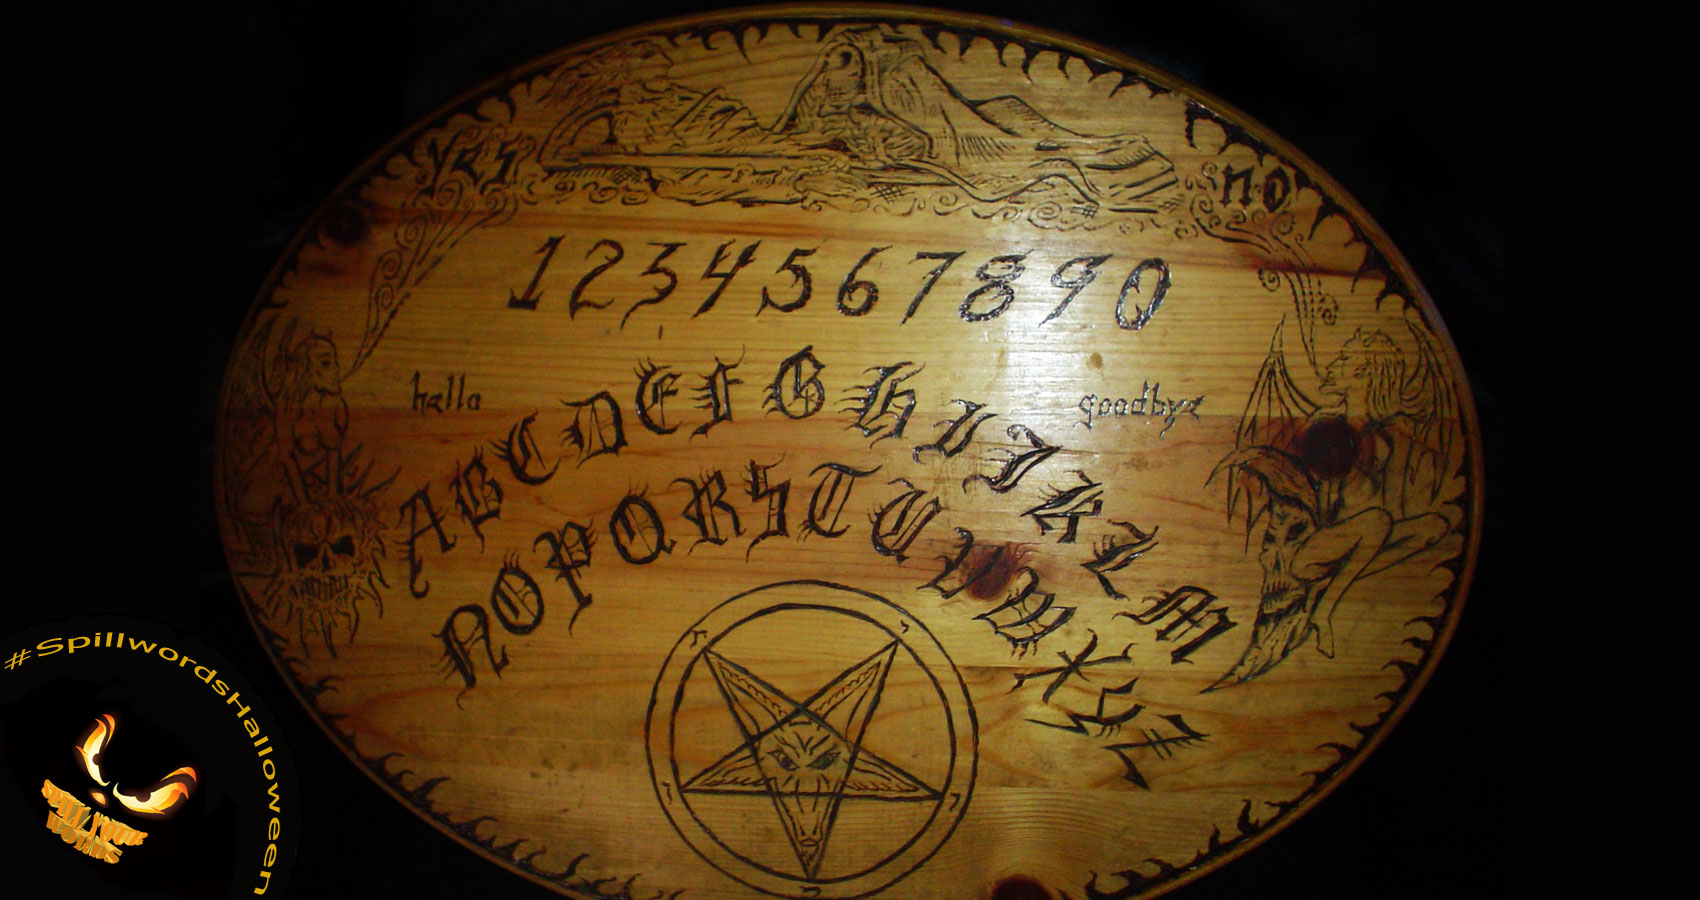 Ouija Tales, written by Stephanie Musarra at Spillwords.com